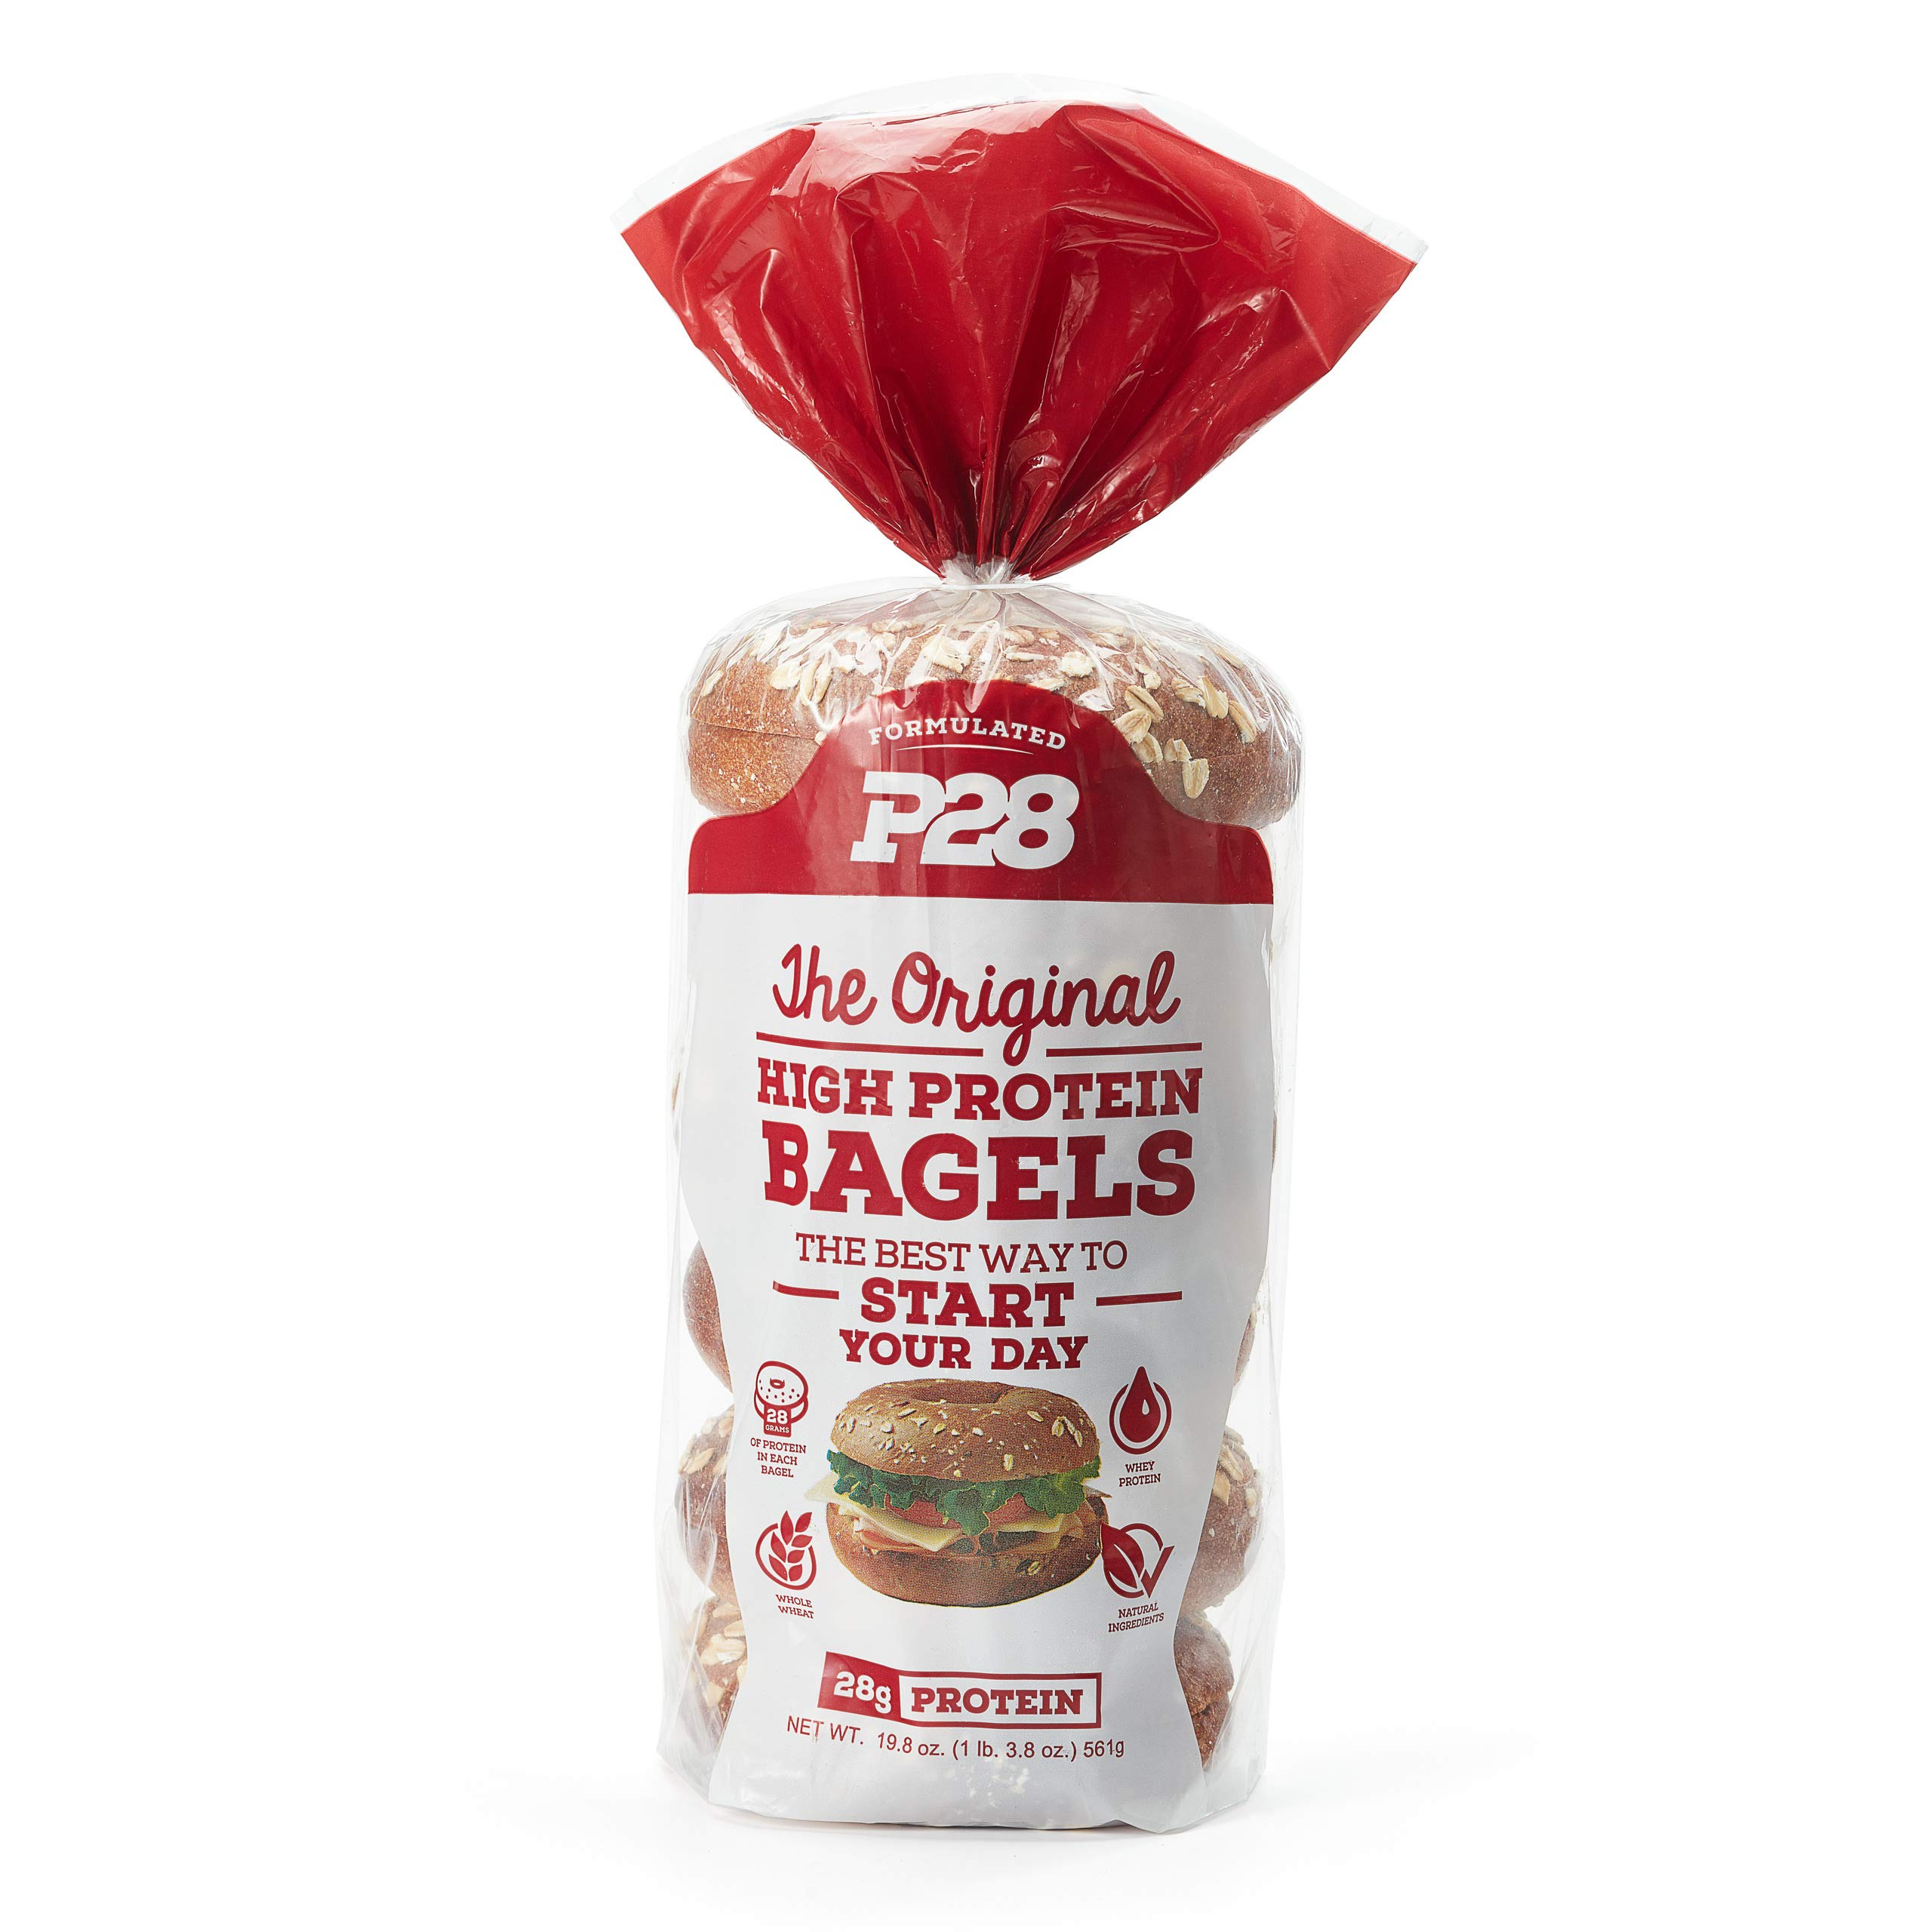 P28 High Protein Bagels, 19 OZ by P28 Foods (Image #1)